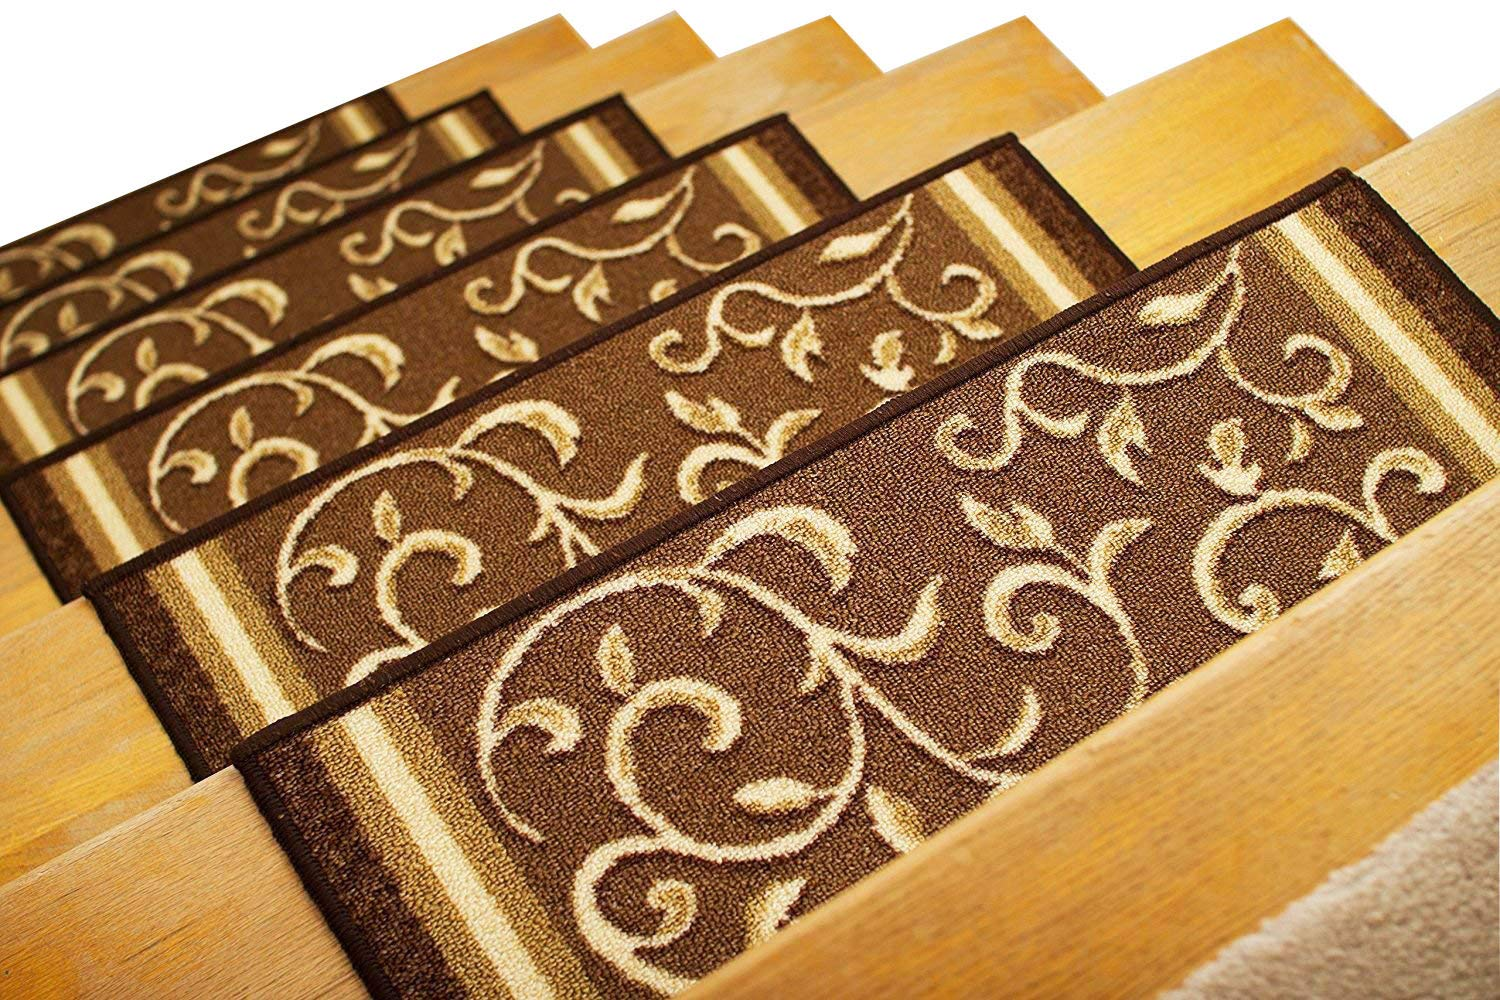 Gloria Rug Stair Treads Non Slip - Outdoor Skid Resistant Stair Set of 7 (8.5'' x 26'') Beautiful Floral Design Stair Mats with Rubber Backing, Brown Floral Design by Gloria Rug